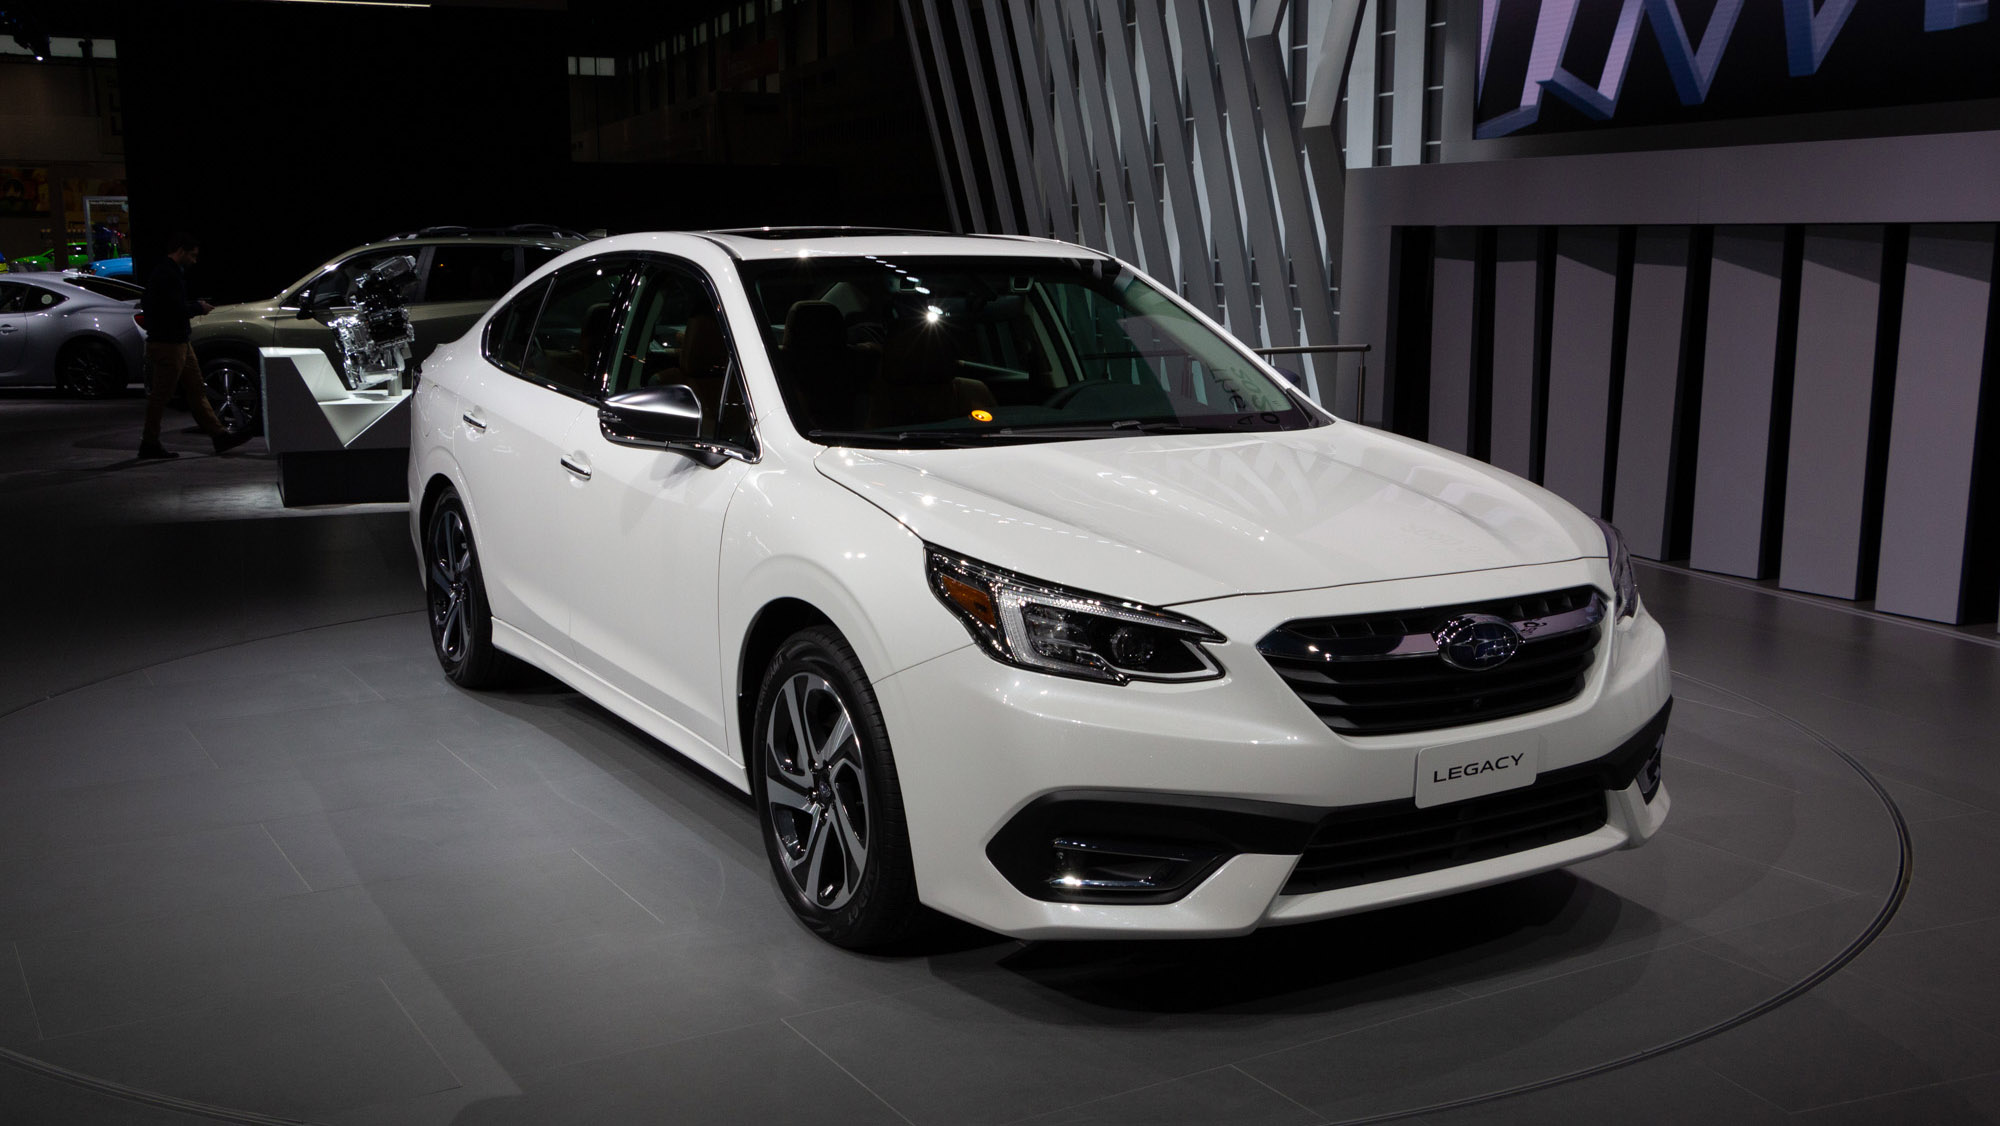 Subaru S Legacy For 2020 Is The Gift Of More Power Huge Screens Wheels Ca